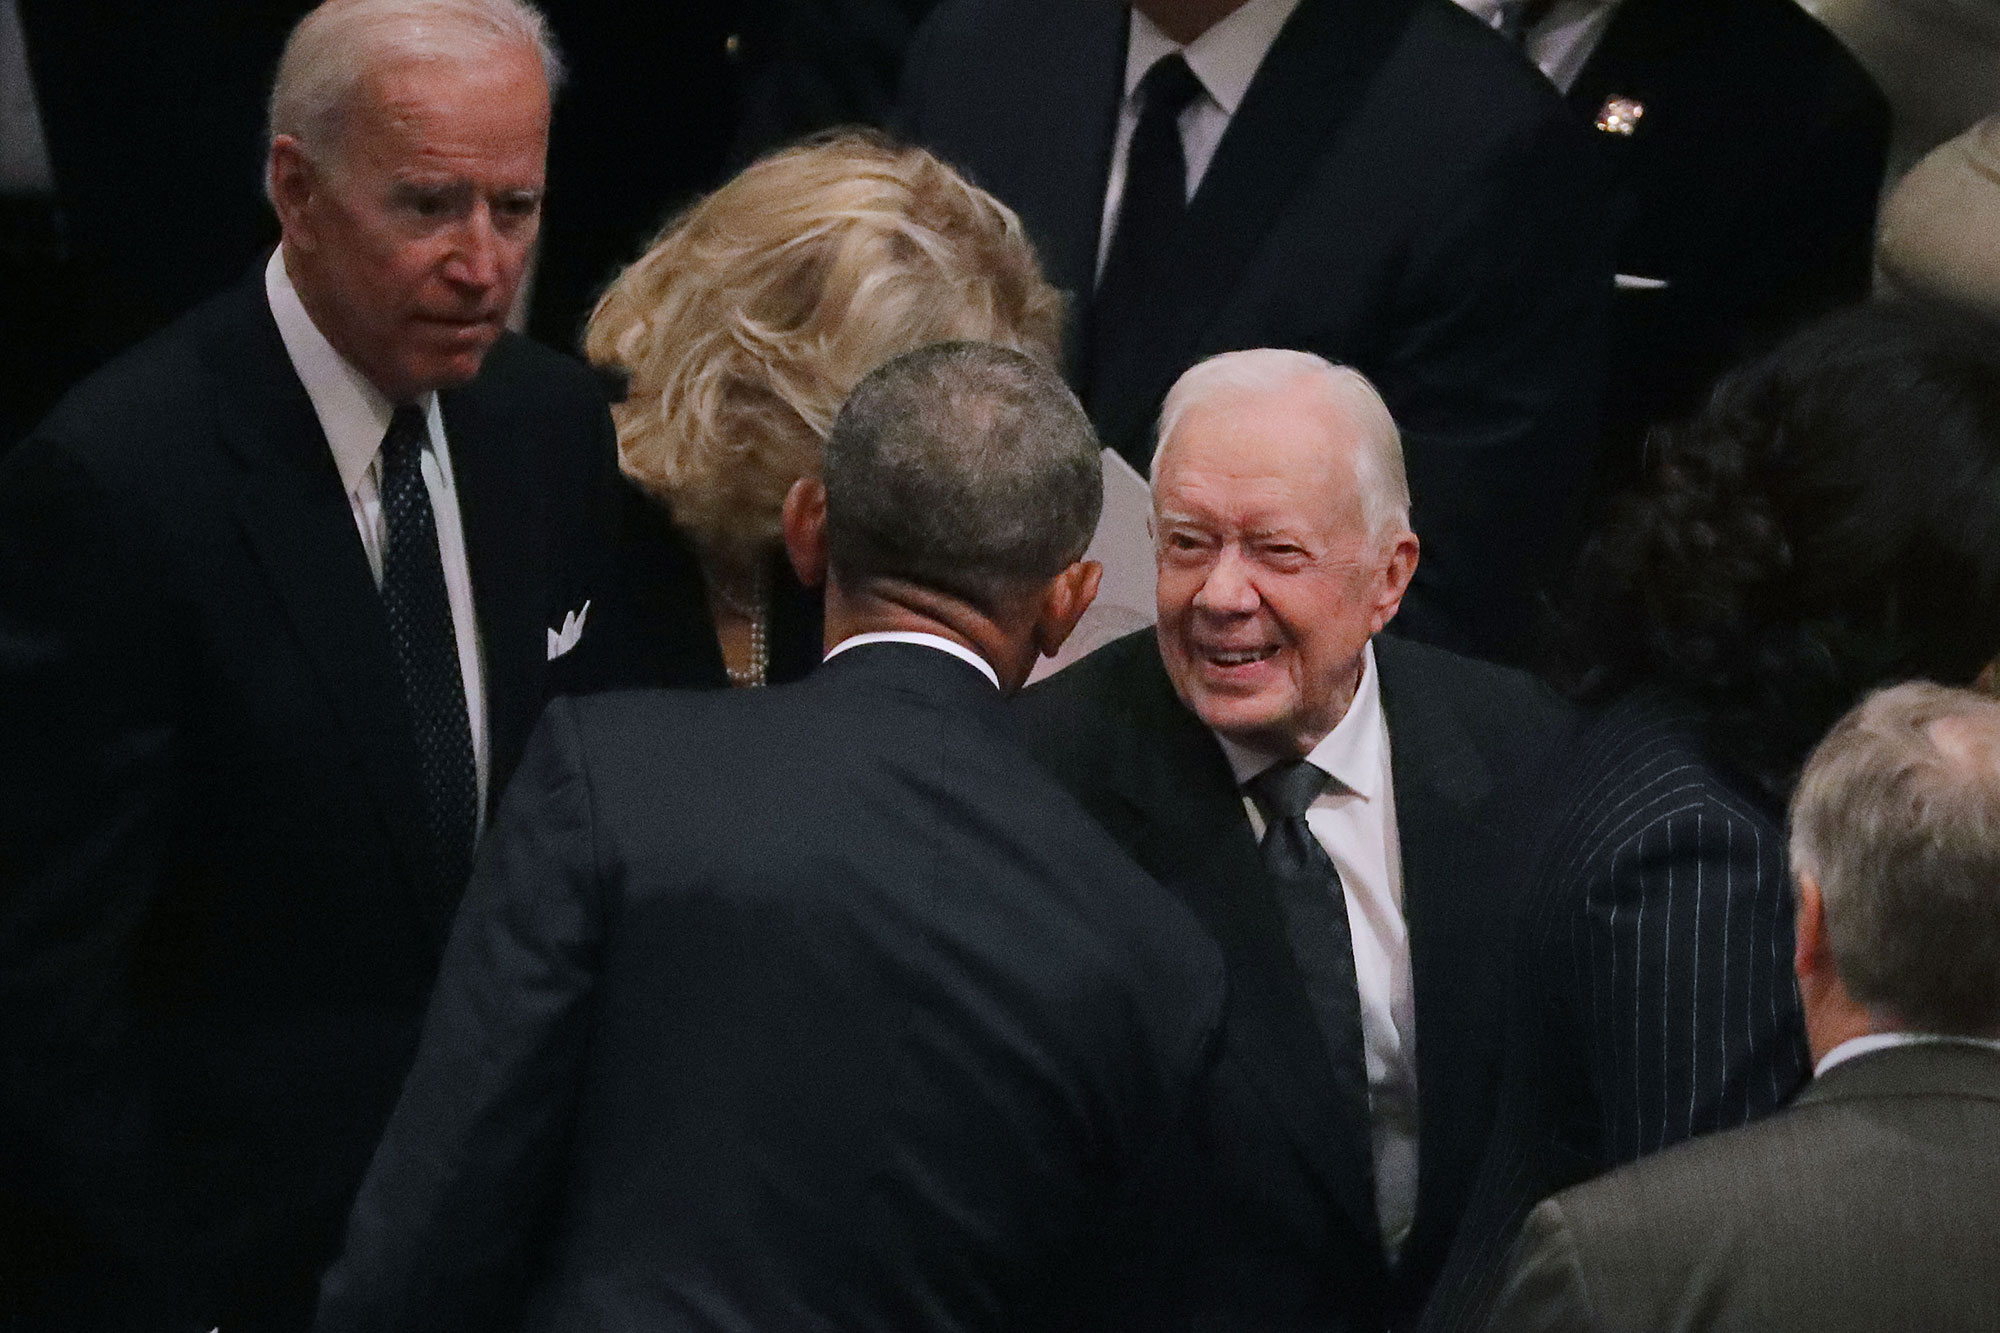 george bush funeral - Barack and Joe greeted the 39th president during the state funeral.